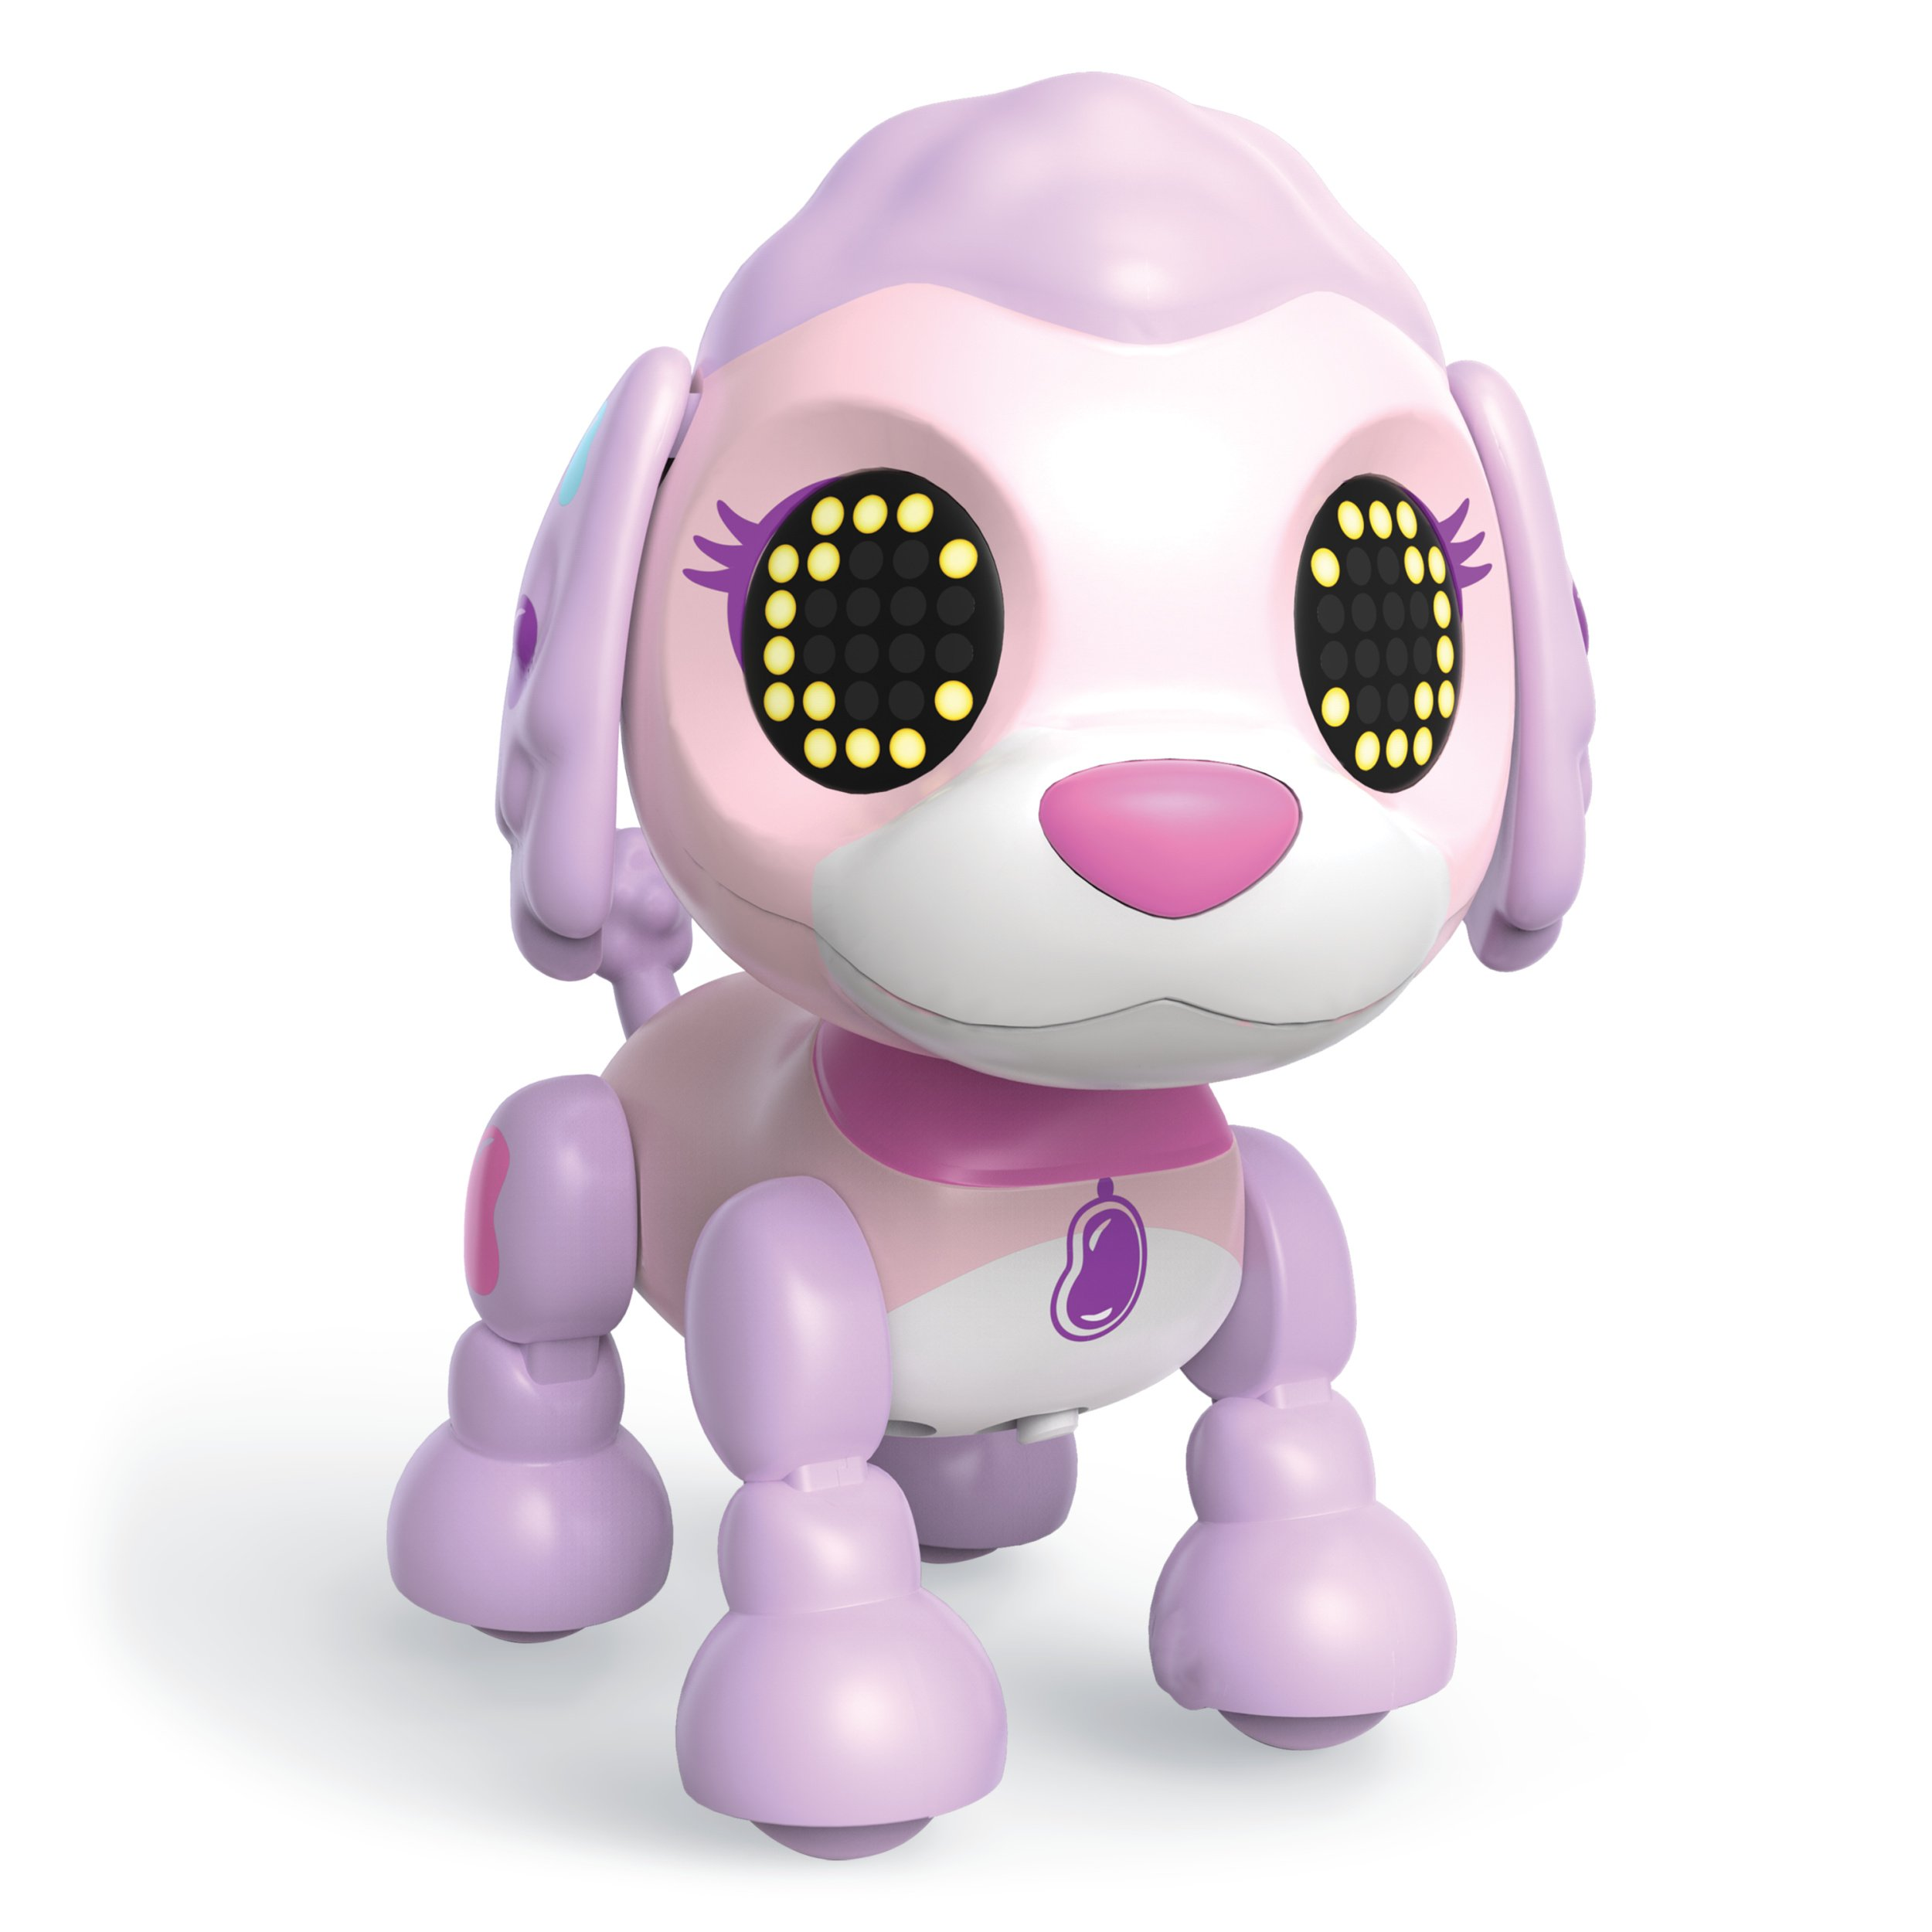 Robot Toys For Girls Kids Robot 4 5 6 7 8 9 Year Old Age Girl